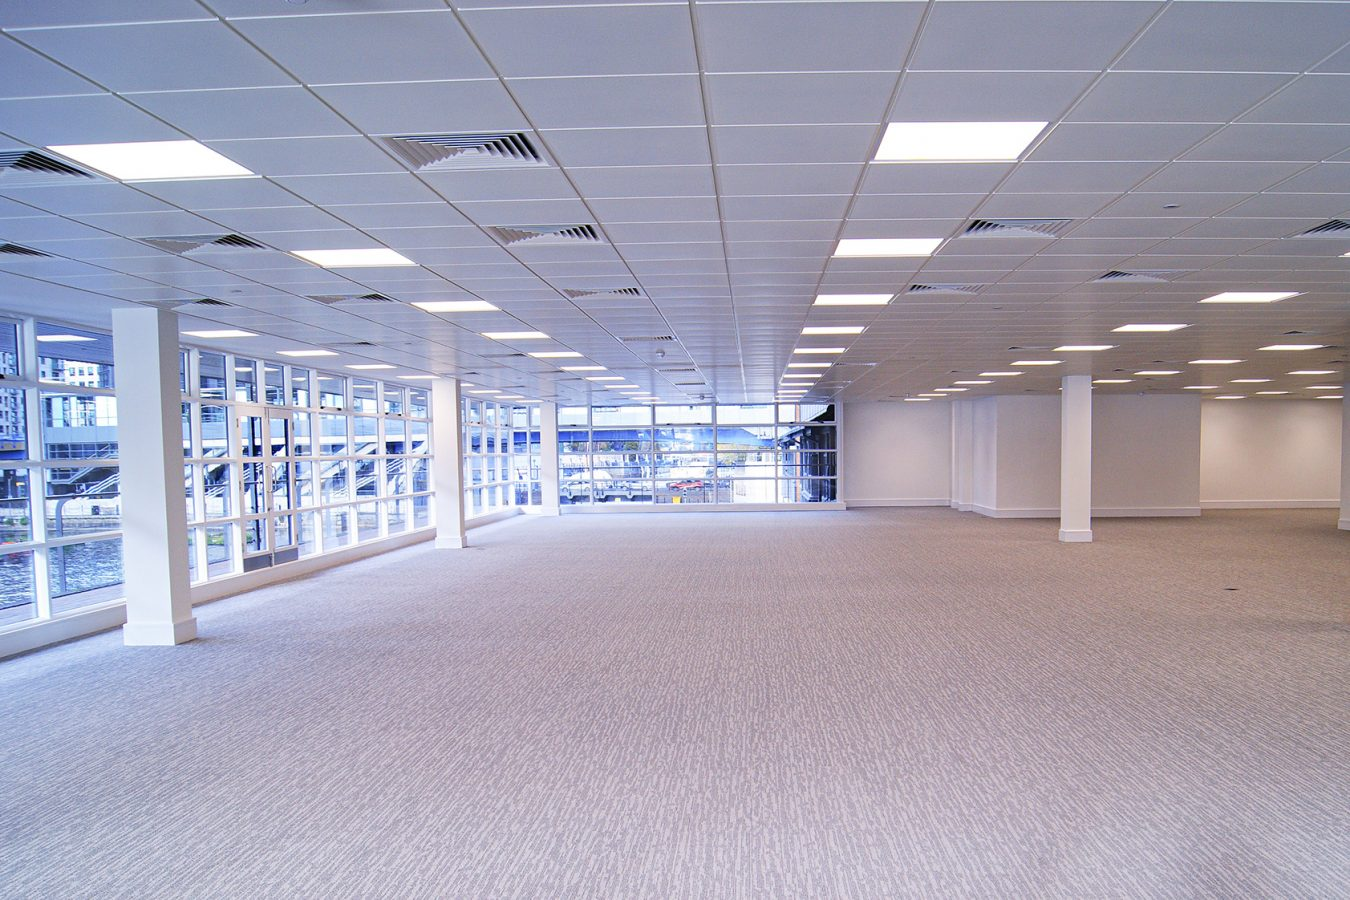 A Cat A office refurbishment in Harbour Exchange, created by Open contractors. Cat A worplace refurb